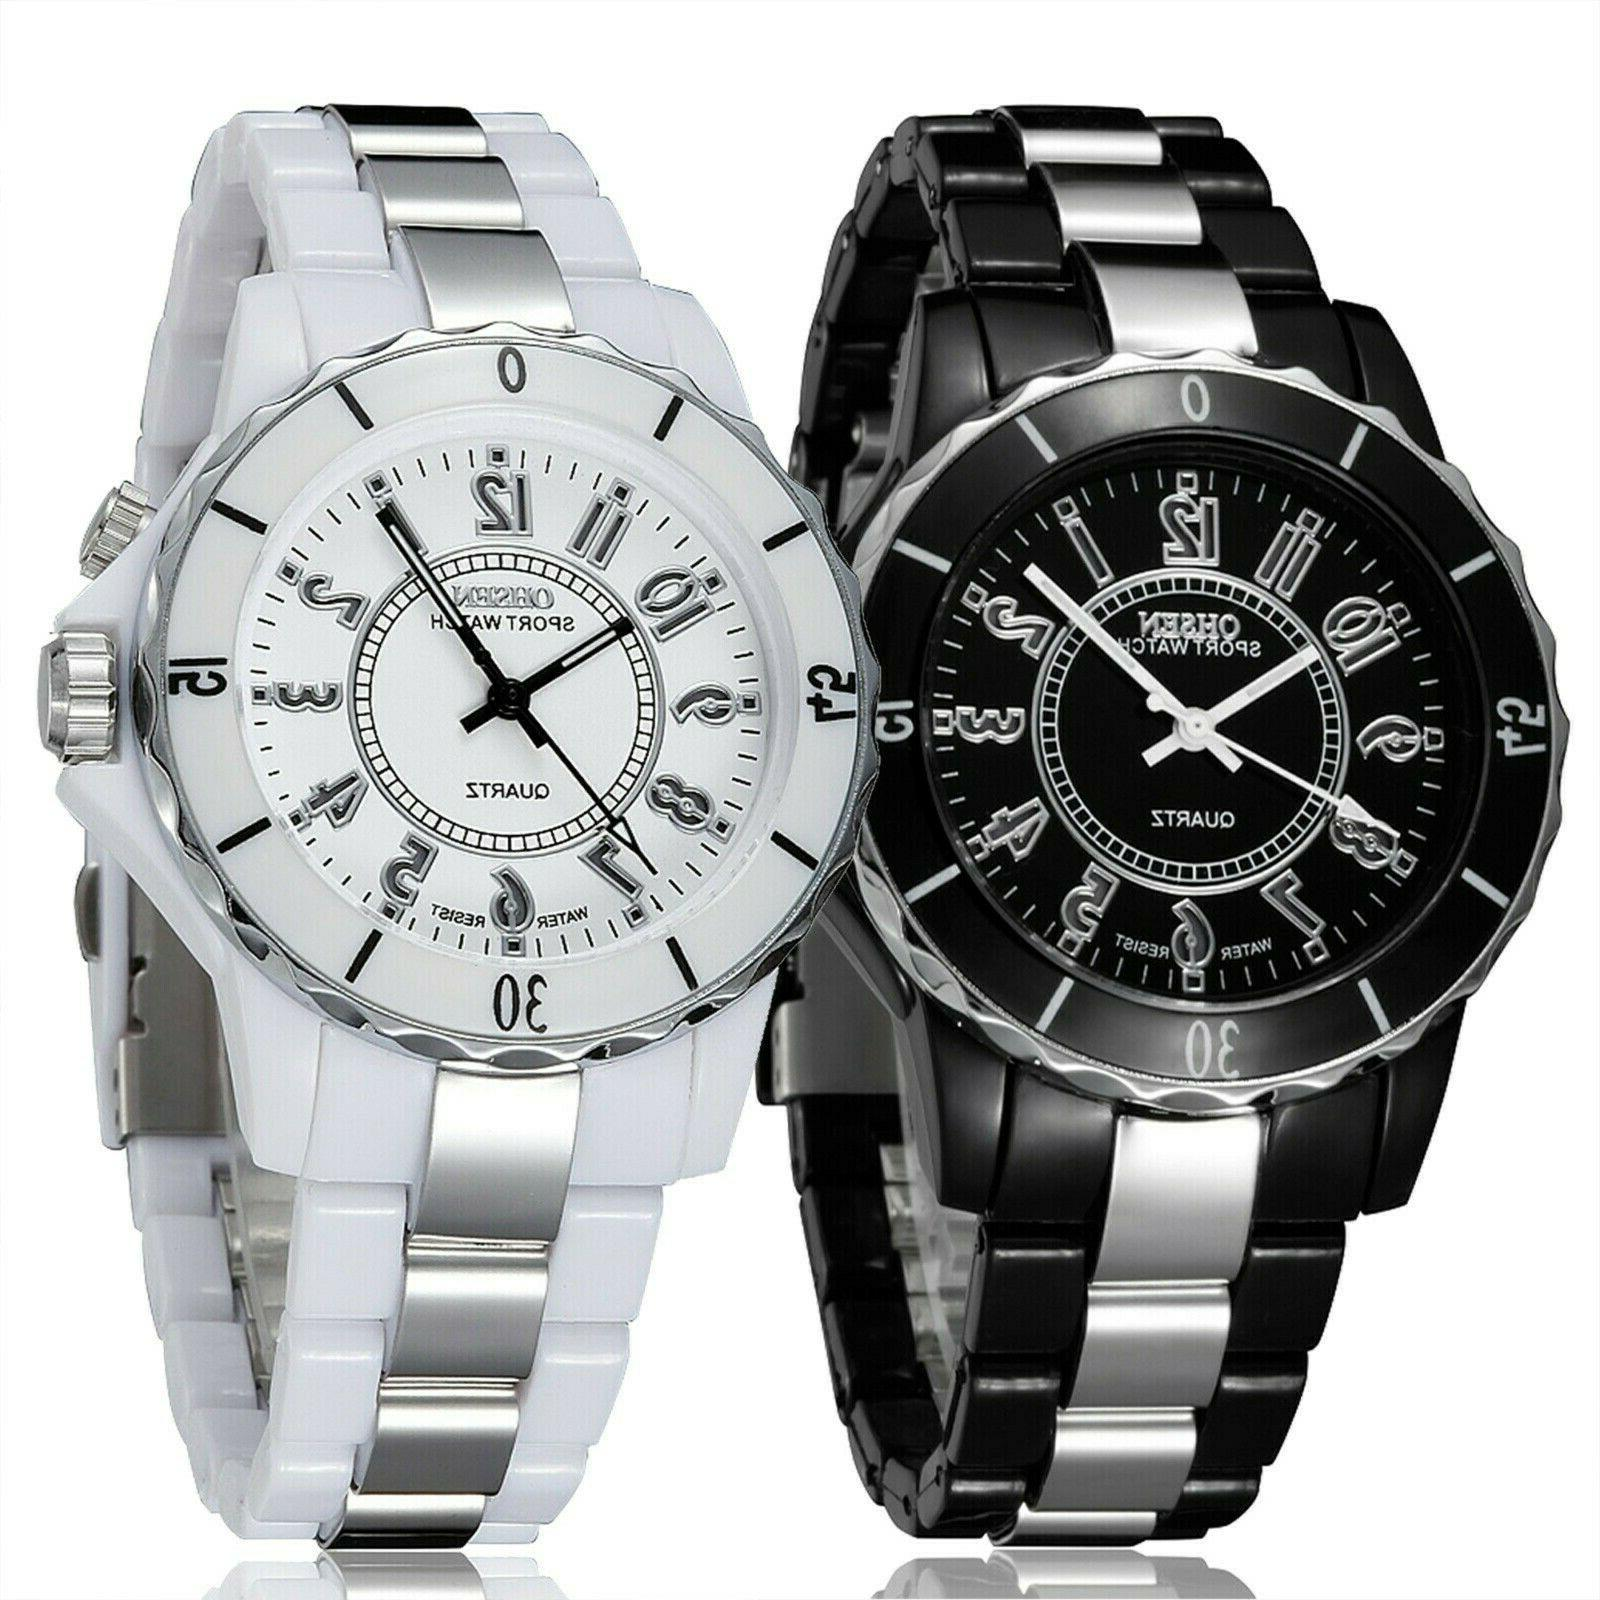 Men's Stainless Steel Couples Wrist Watch Analog